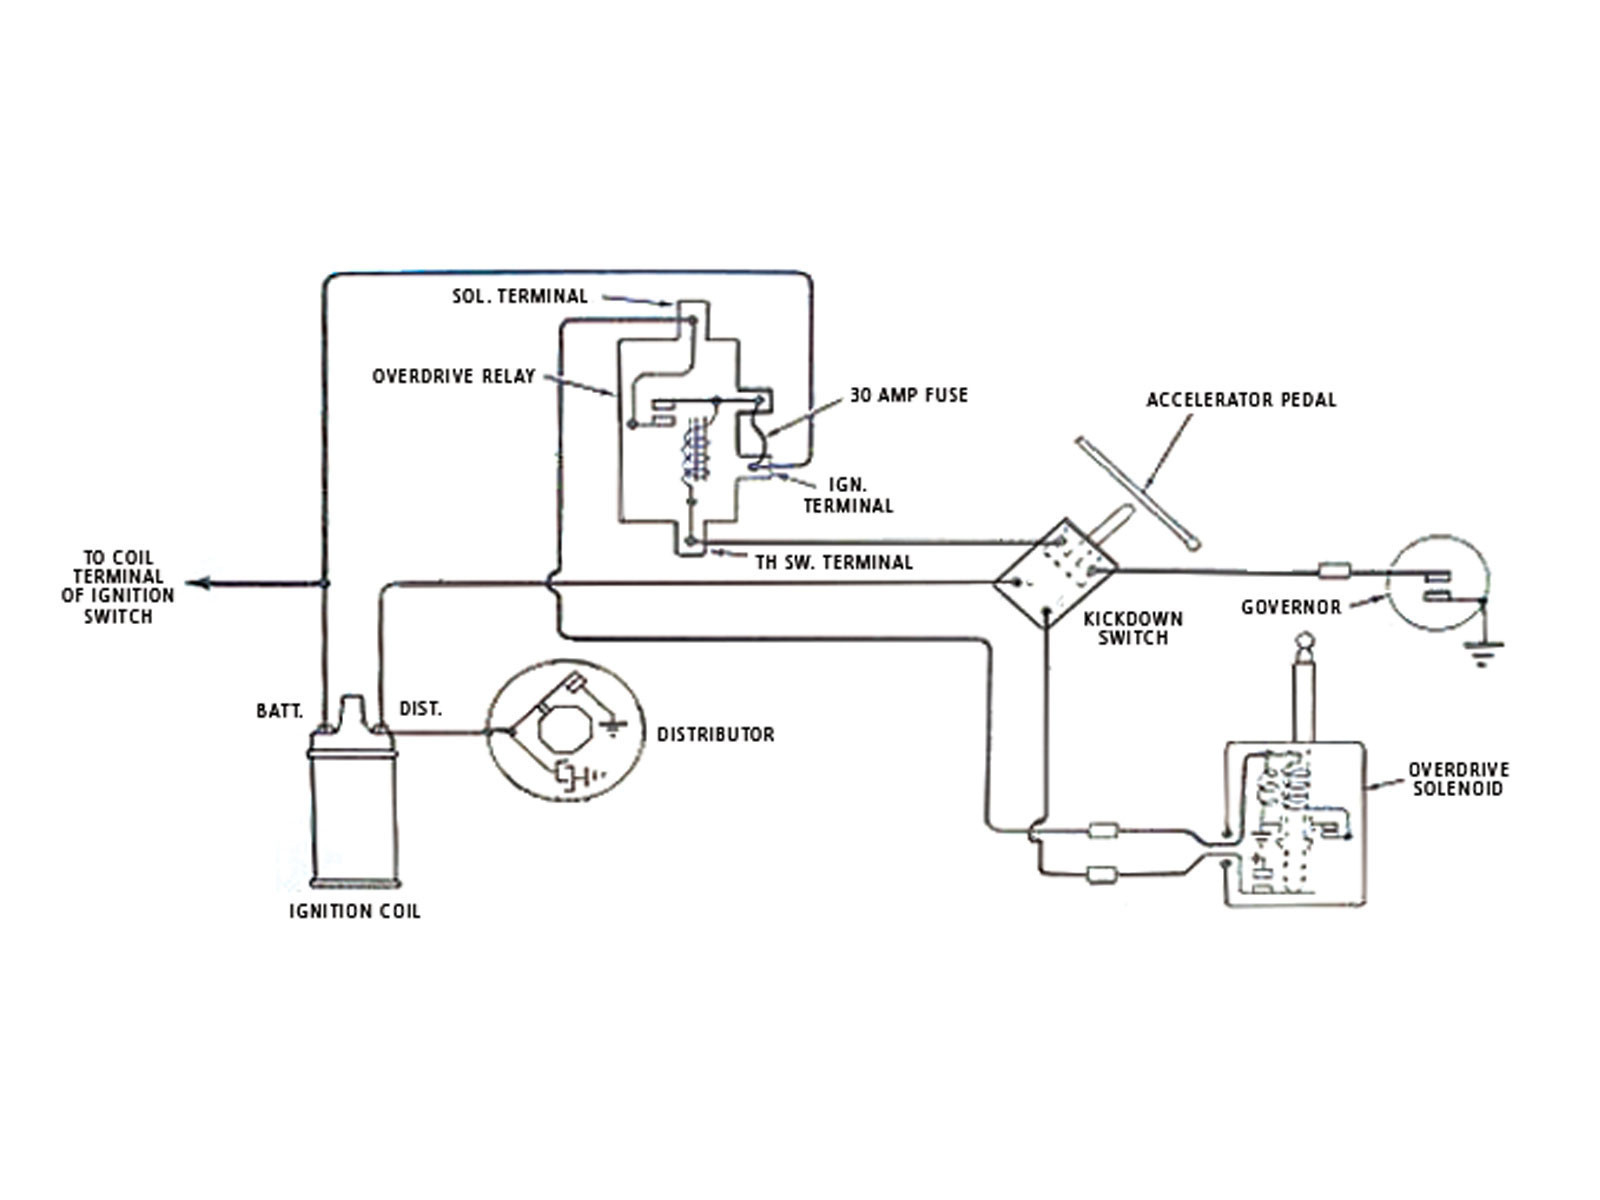 omron safety relay wiring diagram Download-Wiring Diagram for Pilz Safety Relay Valid Perfect Ab Safety Relay Collection Best for Wiring Diagram 6-k